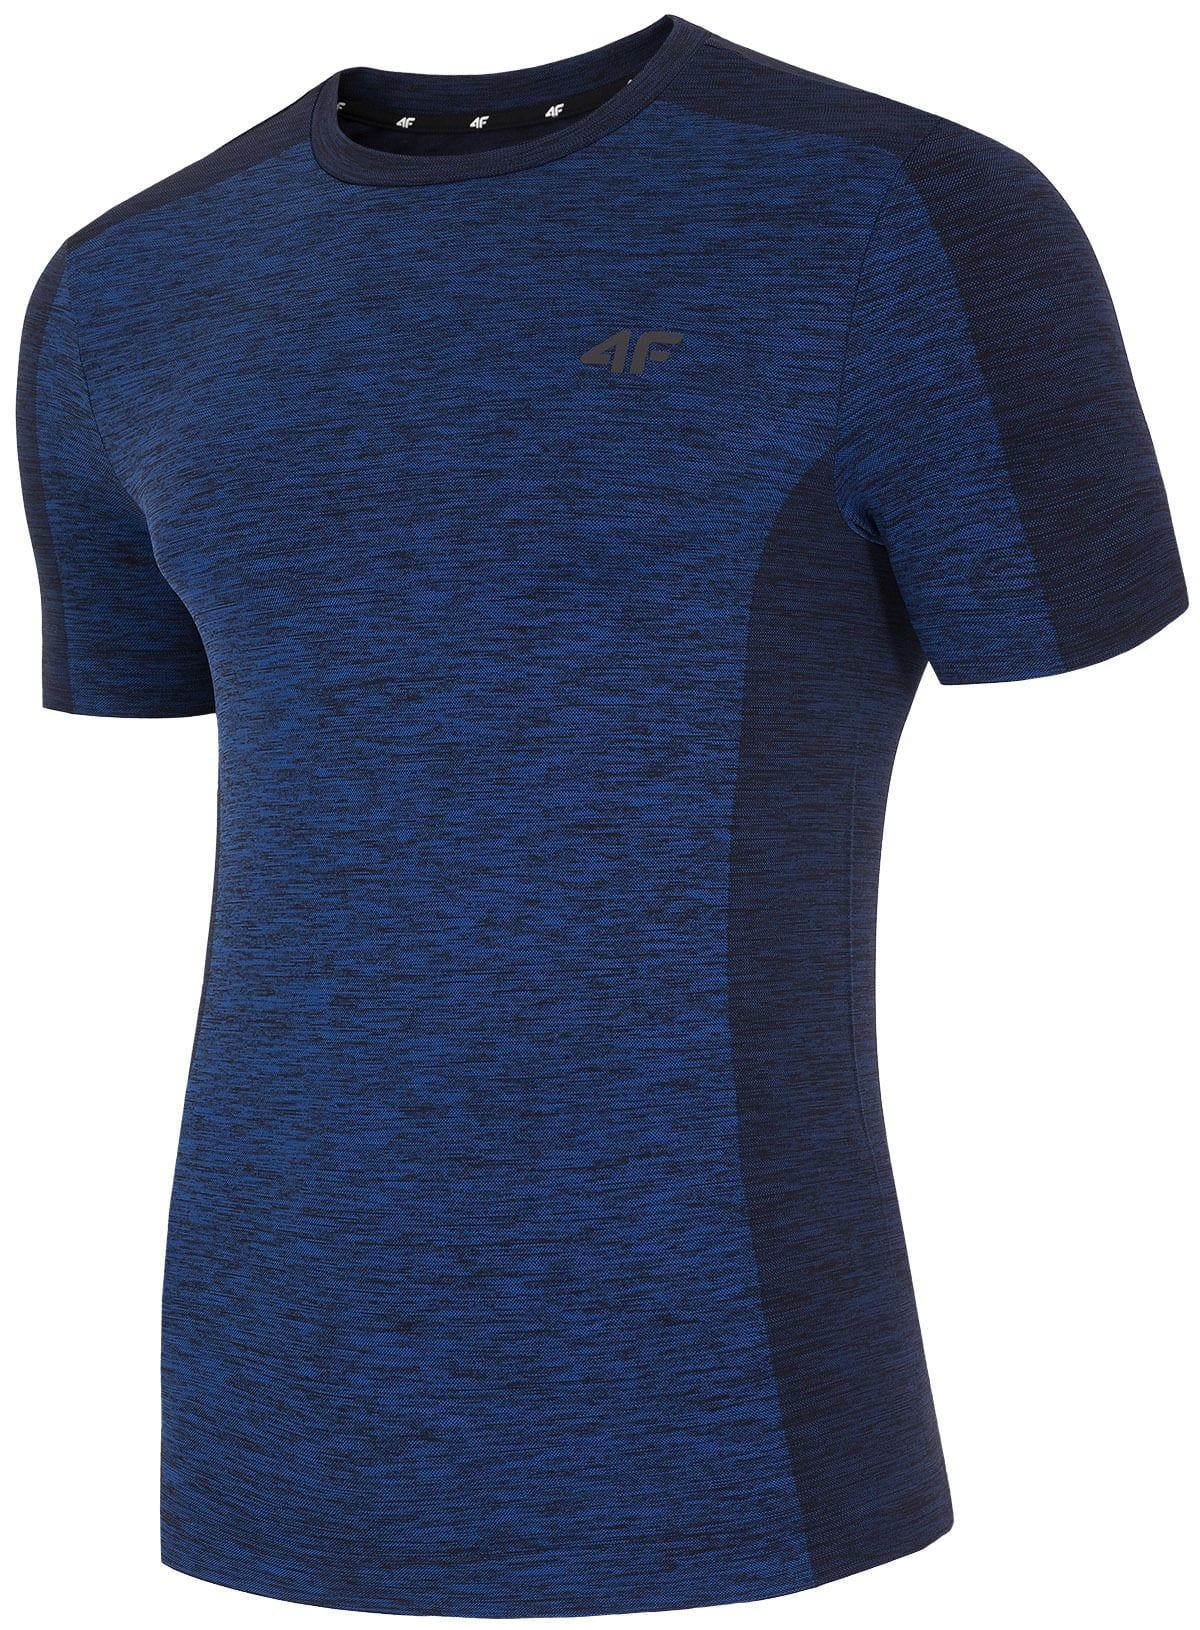 4F Mens Functional T-Shirt tsmf005-30m d